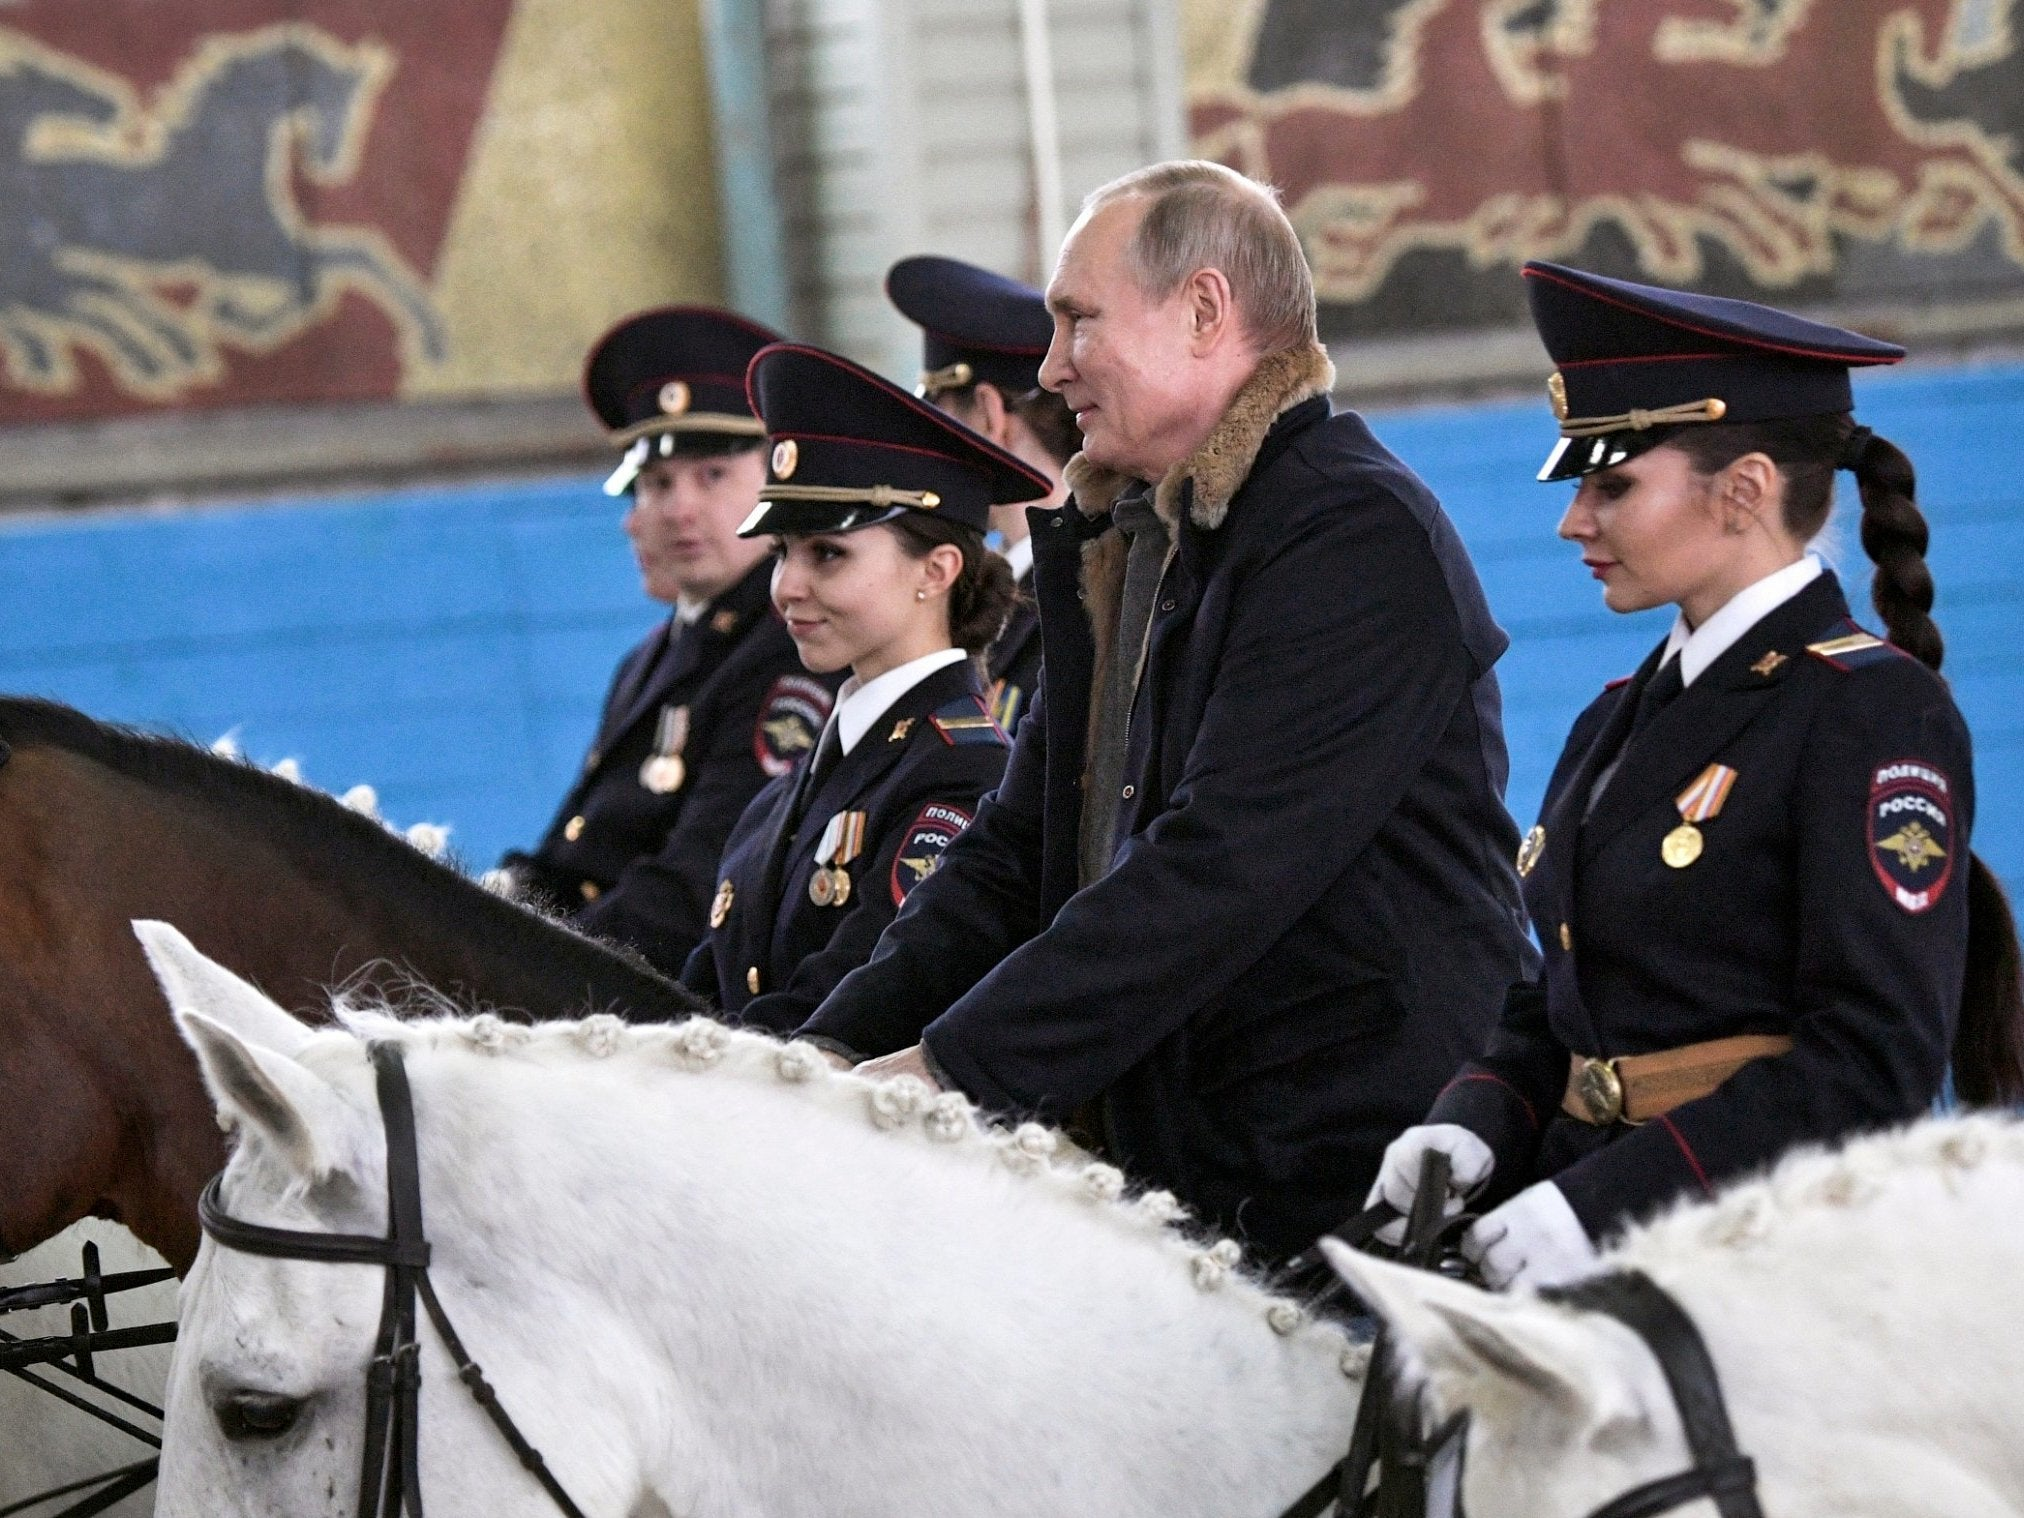 Putin Humiliated By His Horse At International Women S Day Event The Independent The Independent